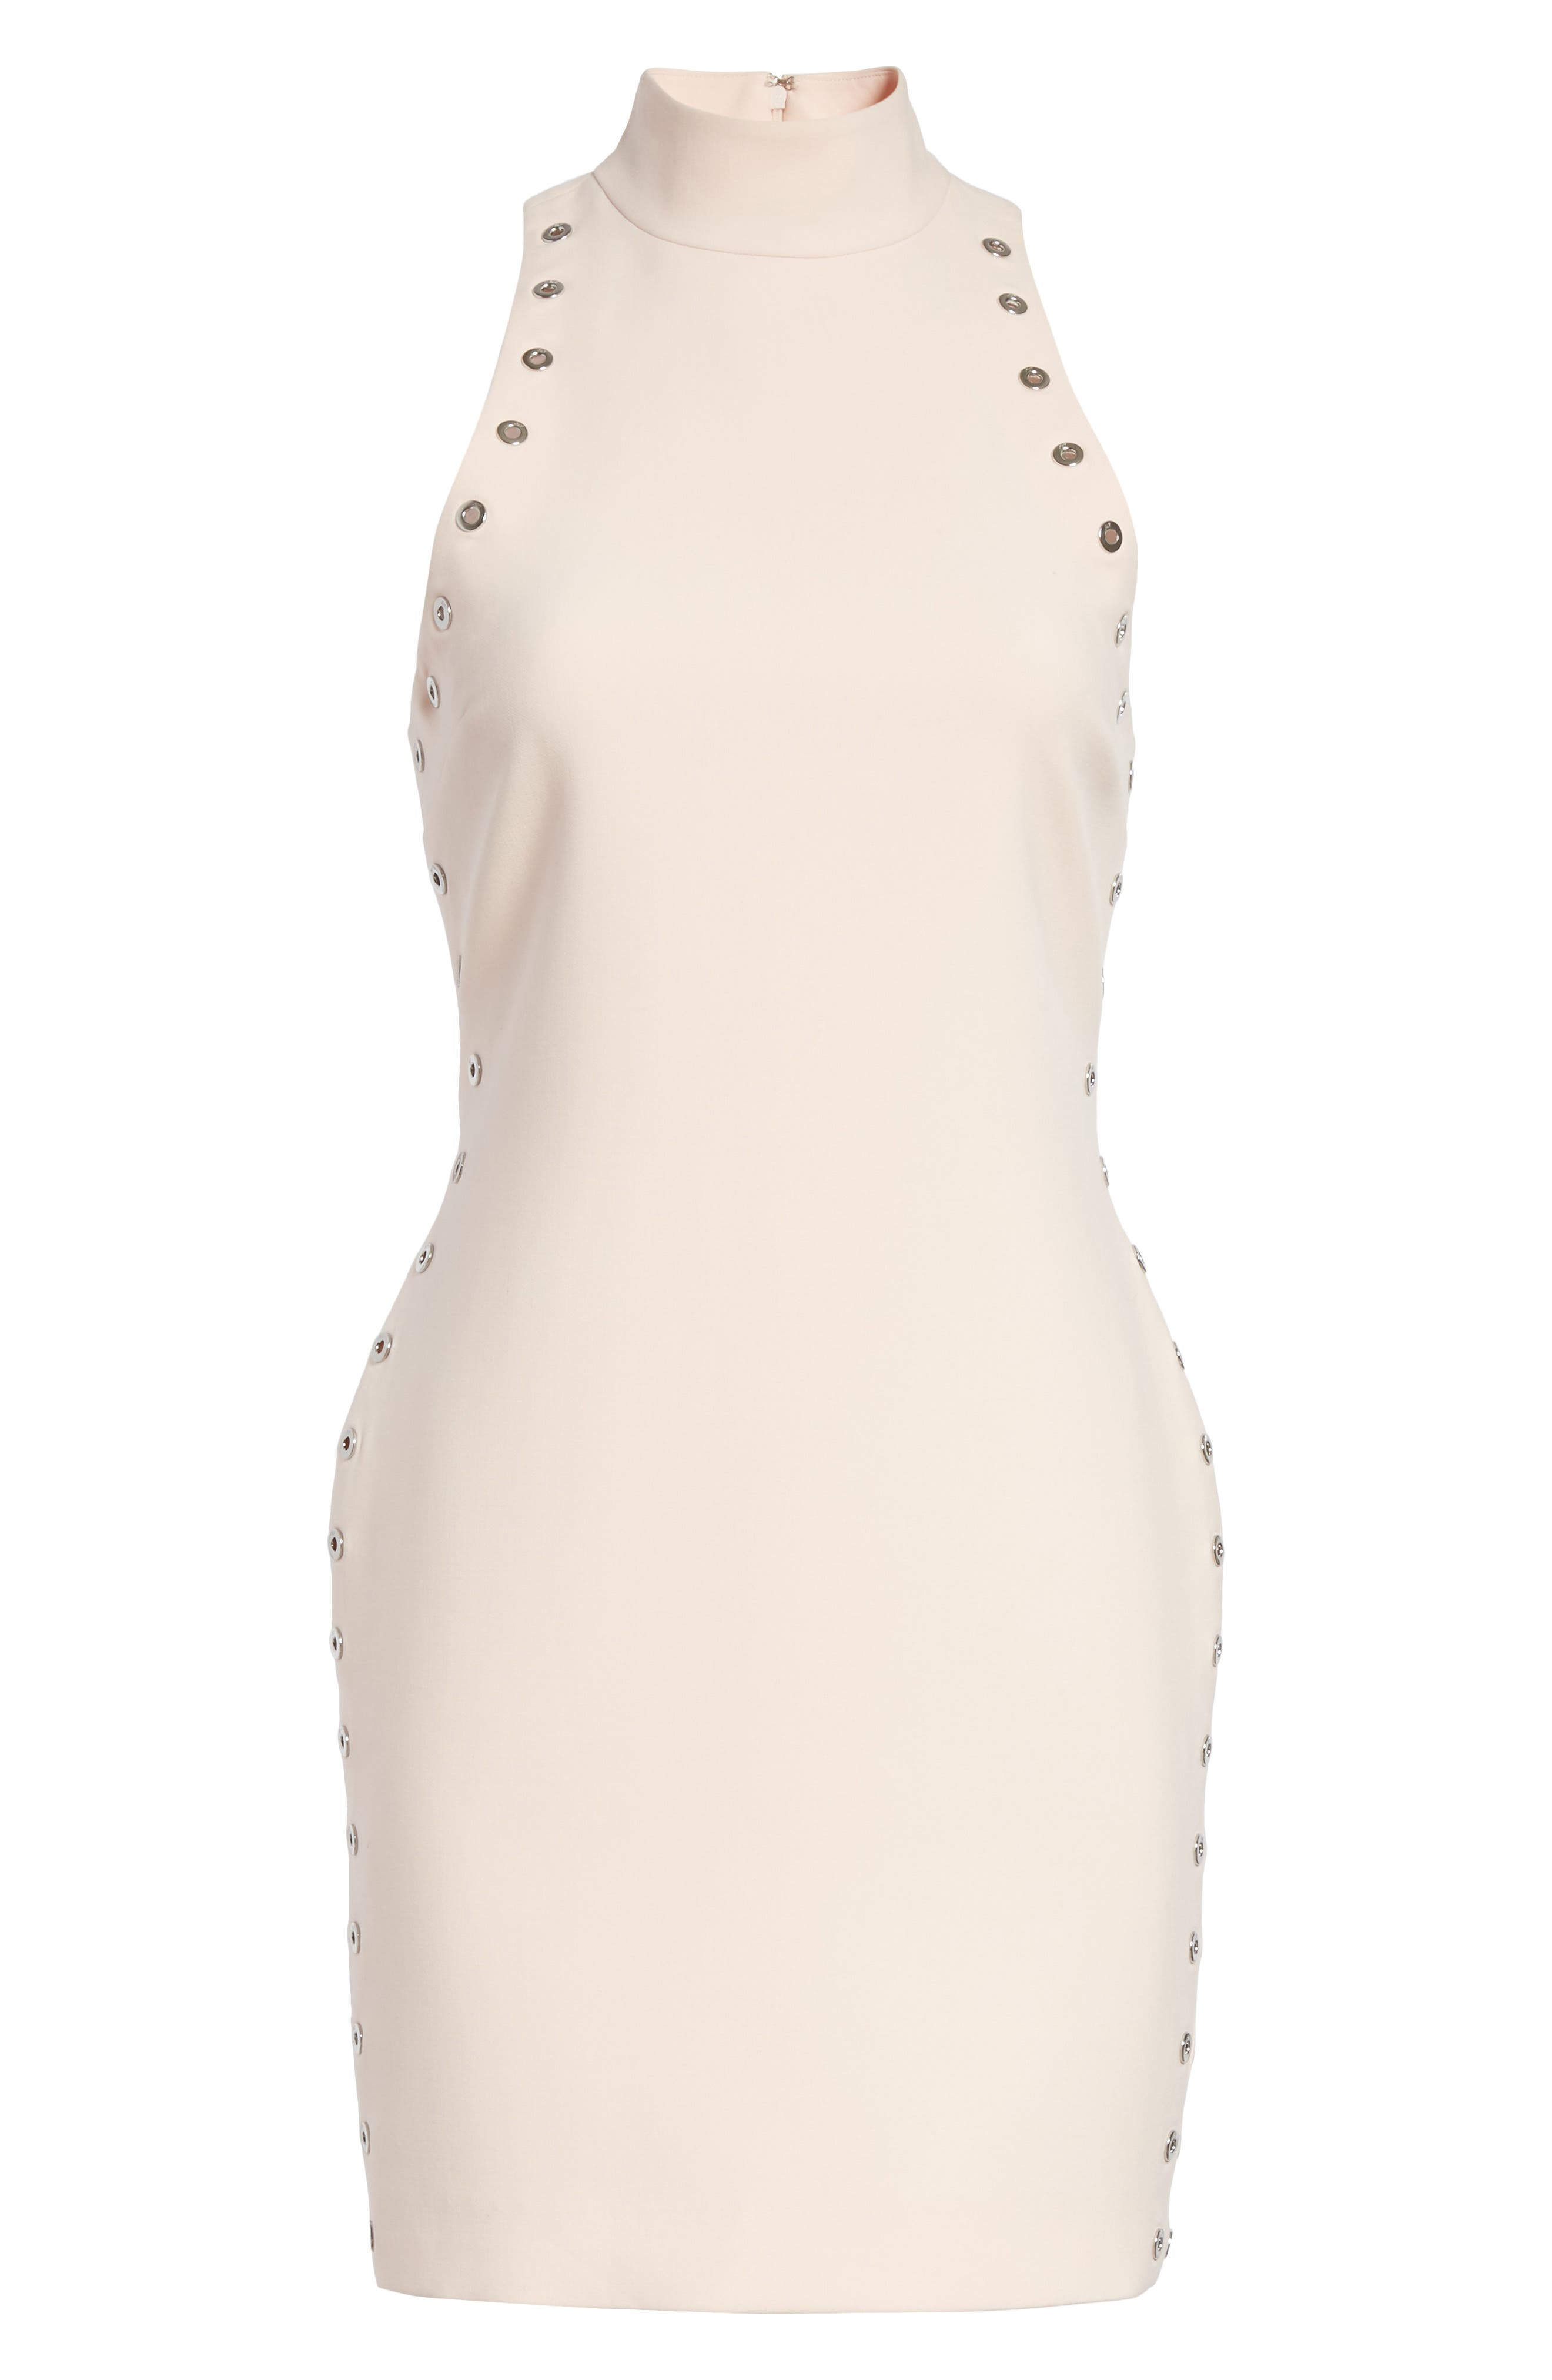 Ava Grommet Minidress,                             Alternate thumbnail 6, color,                             Pearl Blush